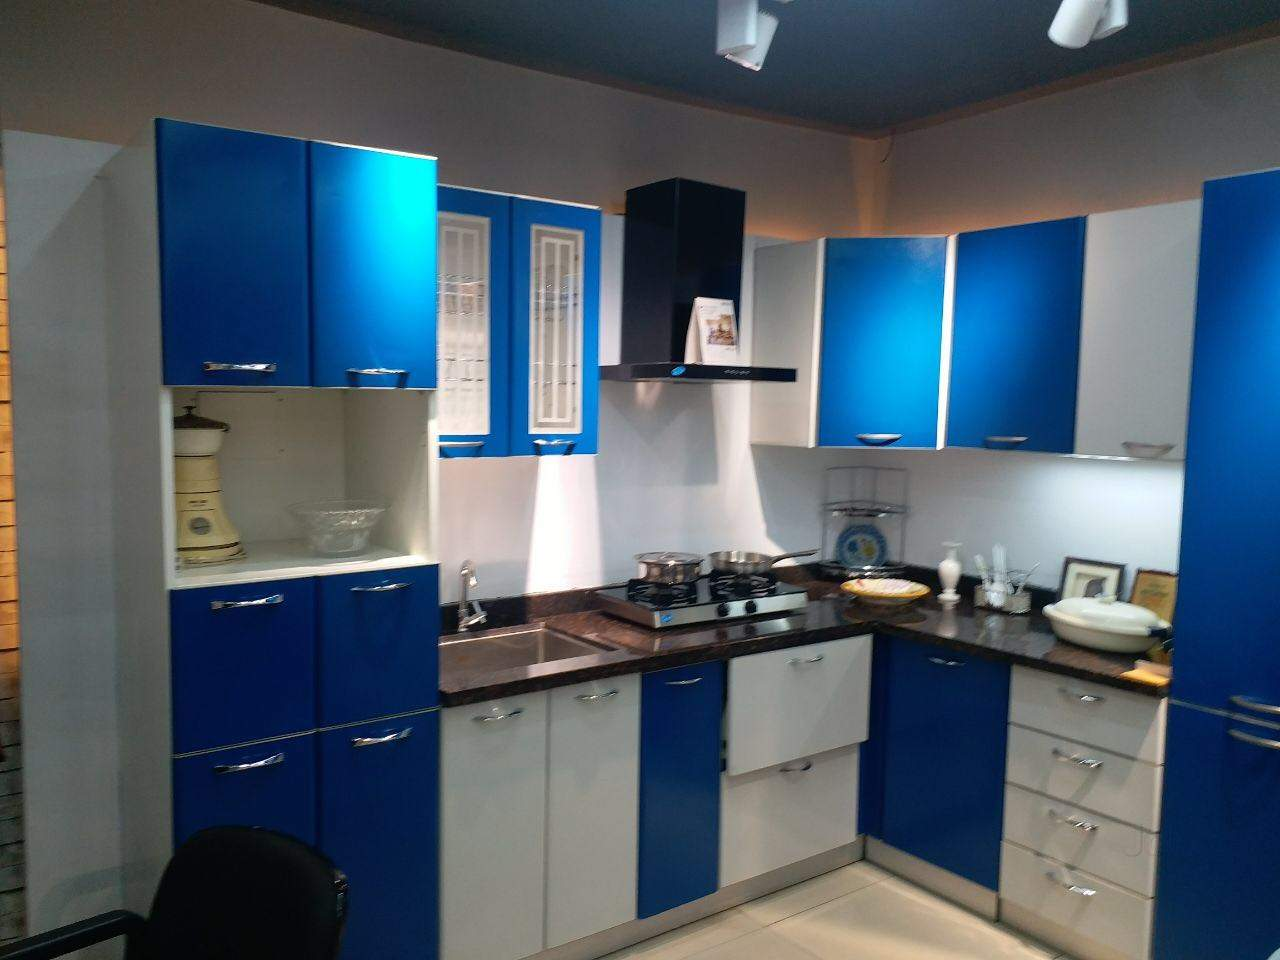 Top 5 places to look out for modular kitchen furniture in Delhi